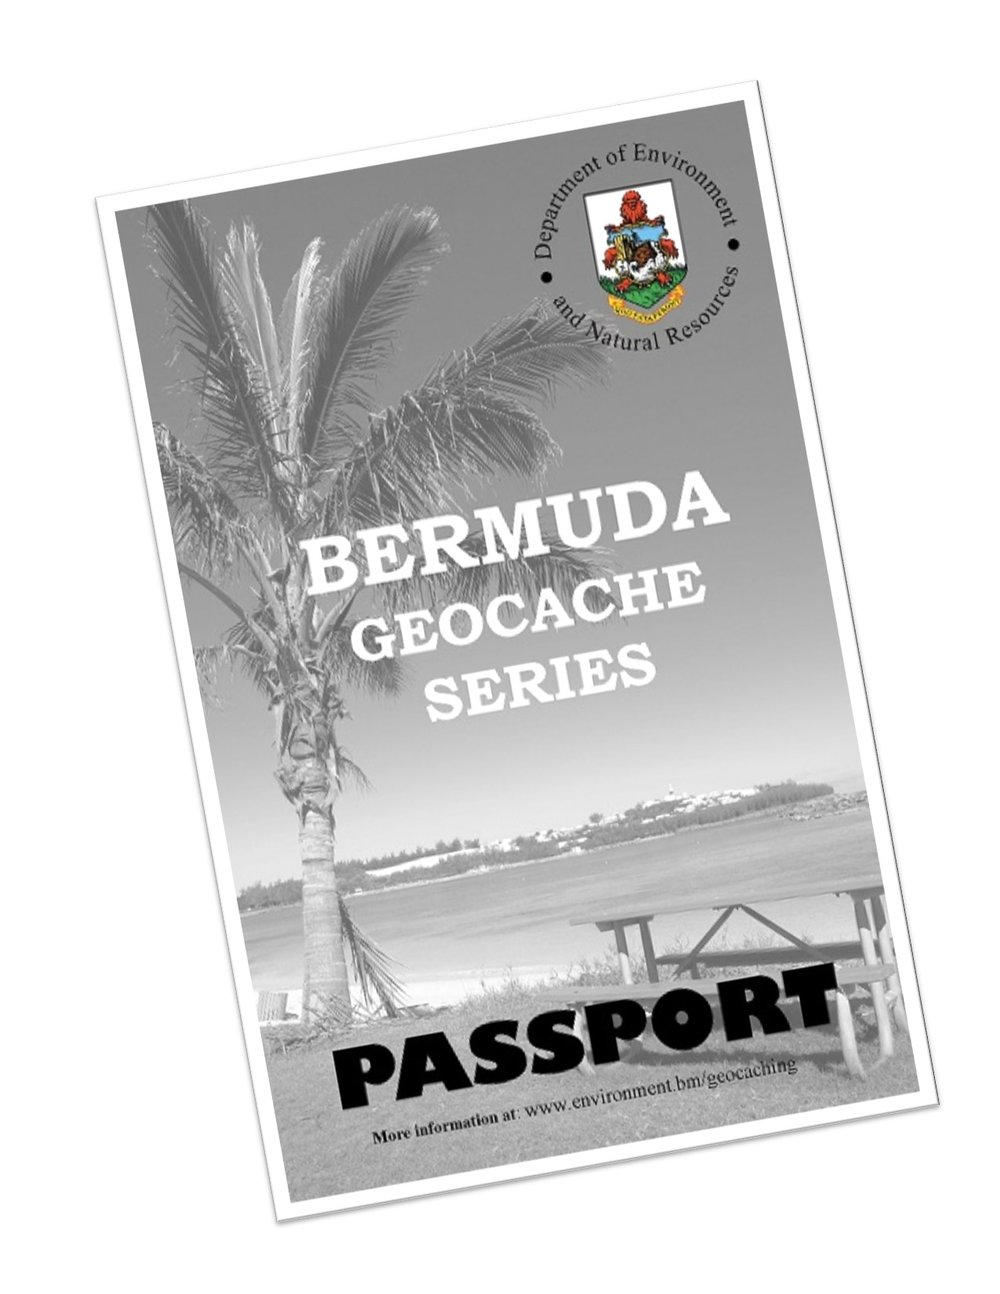 Click to download the Bermuda Geocache Series Passport